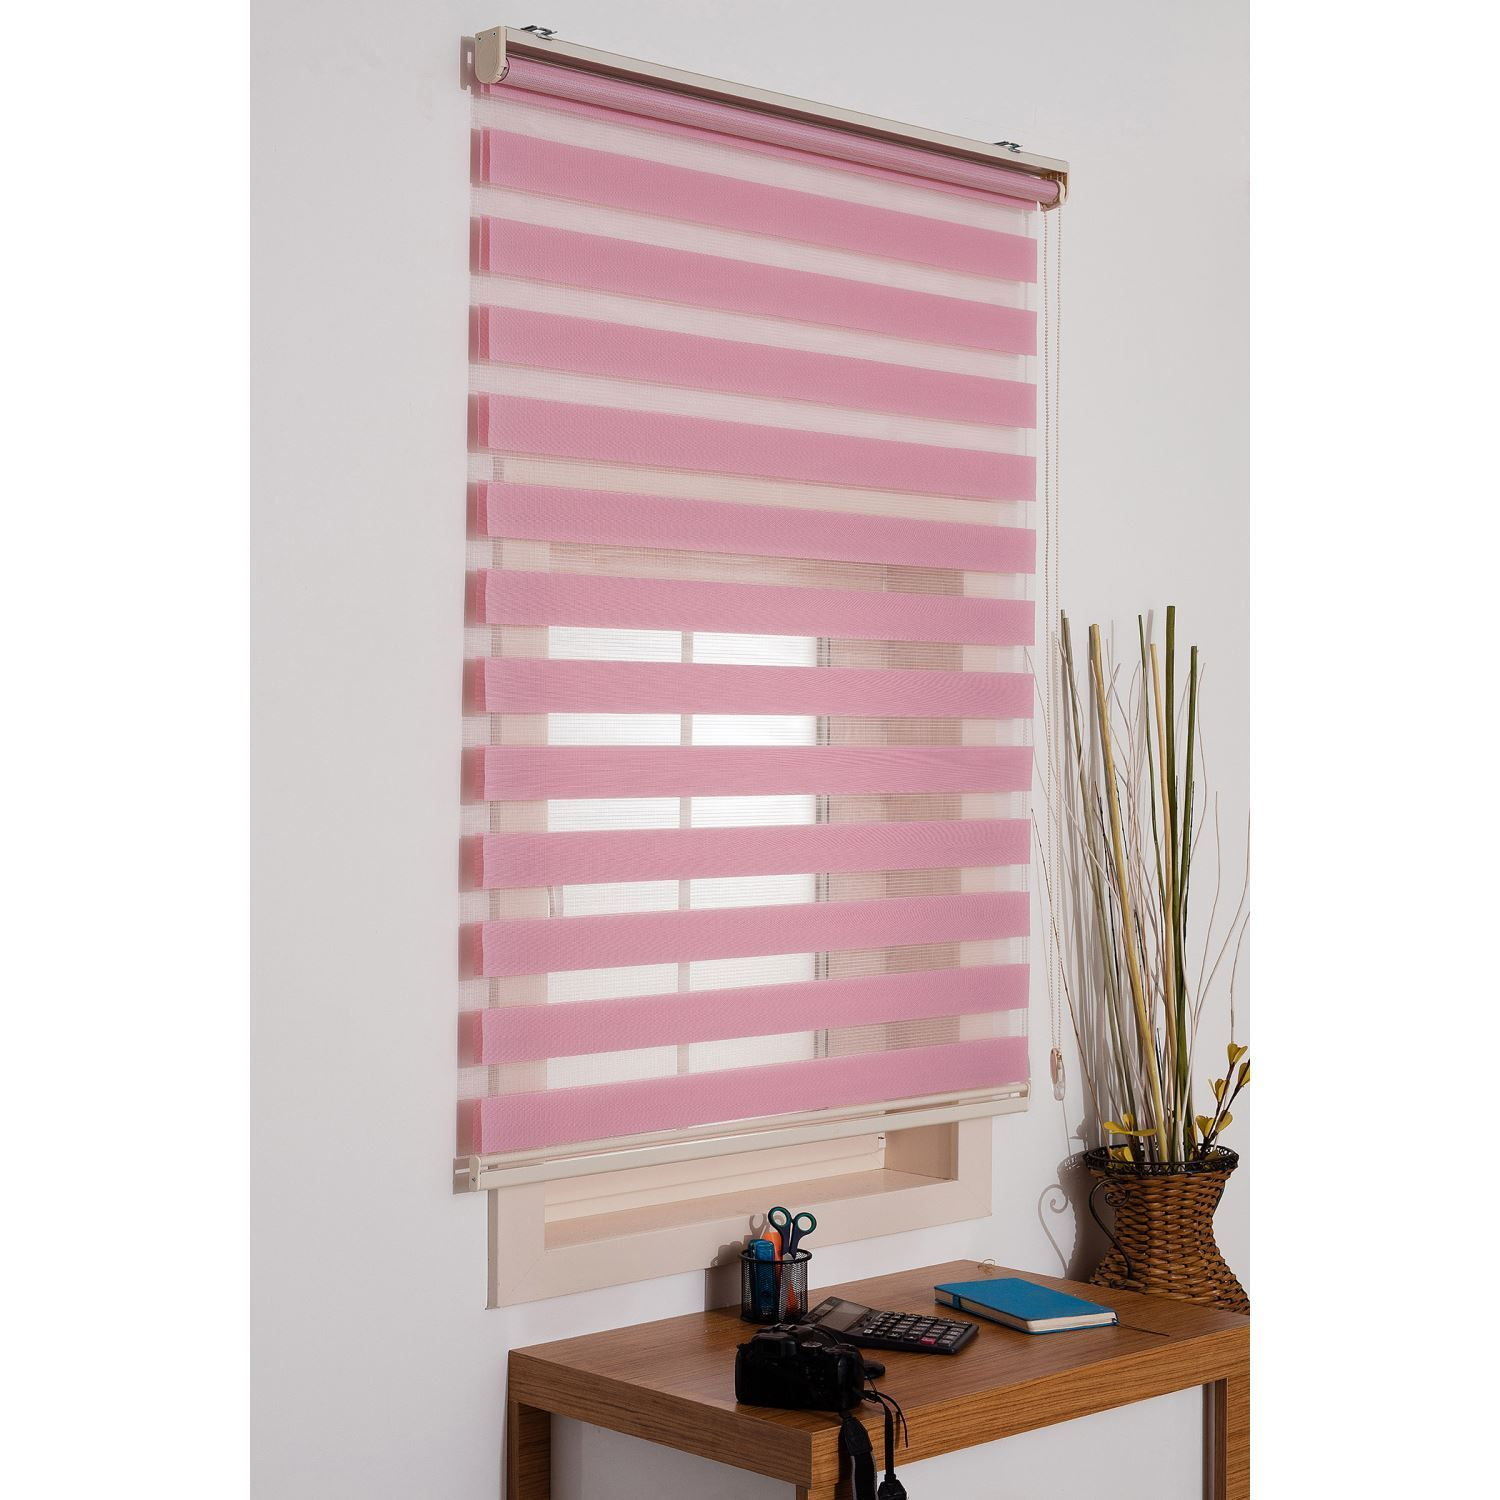 Powder Home Free Stop Cordless Zebra Roller Shades Combi Blind Curtain Drape Dual Layer Sheer Or Priv Curtains With Blinds Living Room Blinds Wooden Blinds